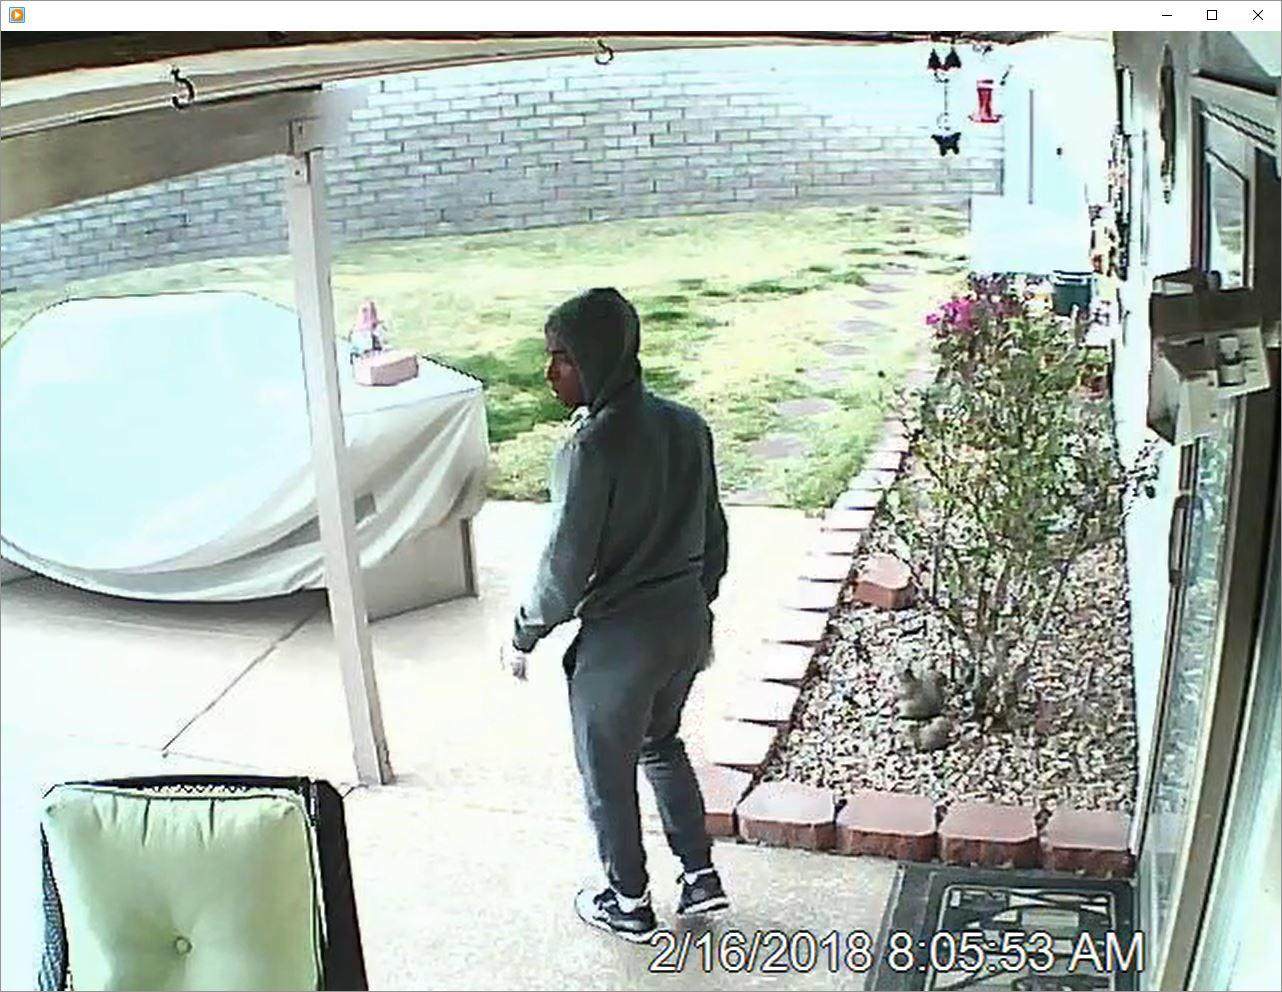 Picture-Detectives Seek To Identify Burglary Suspect